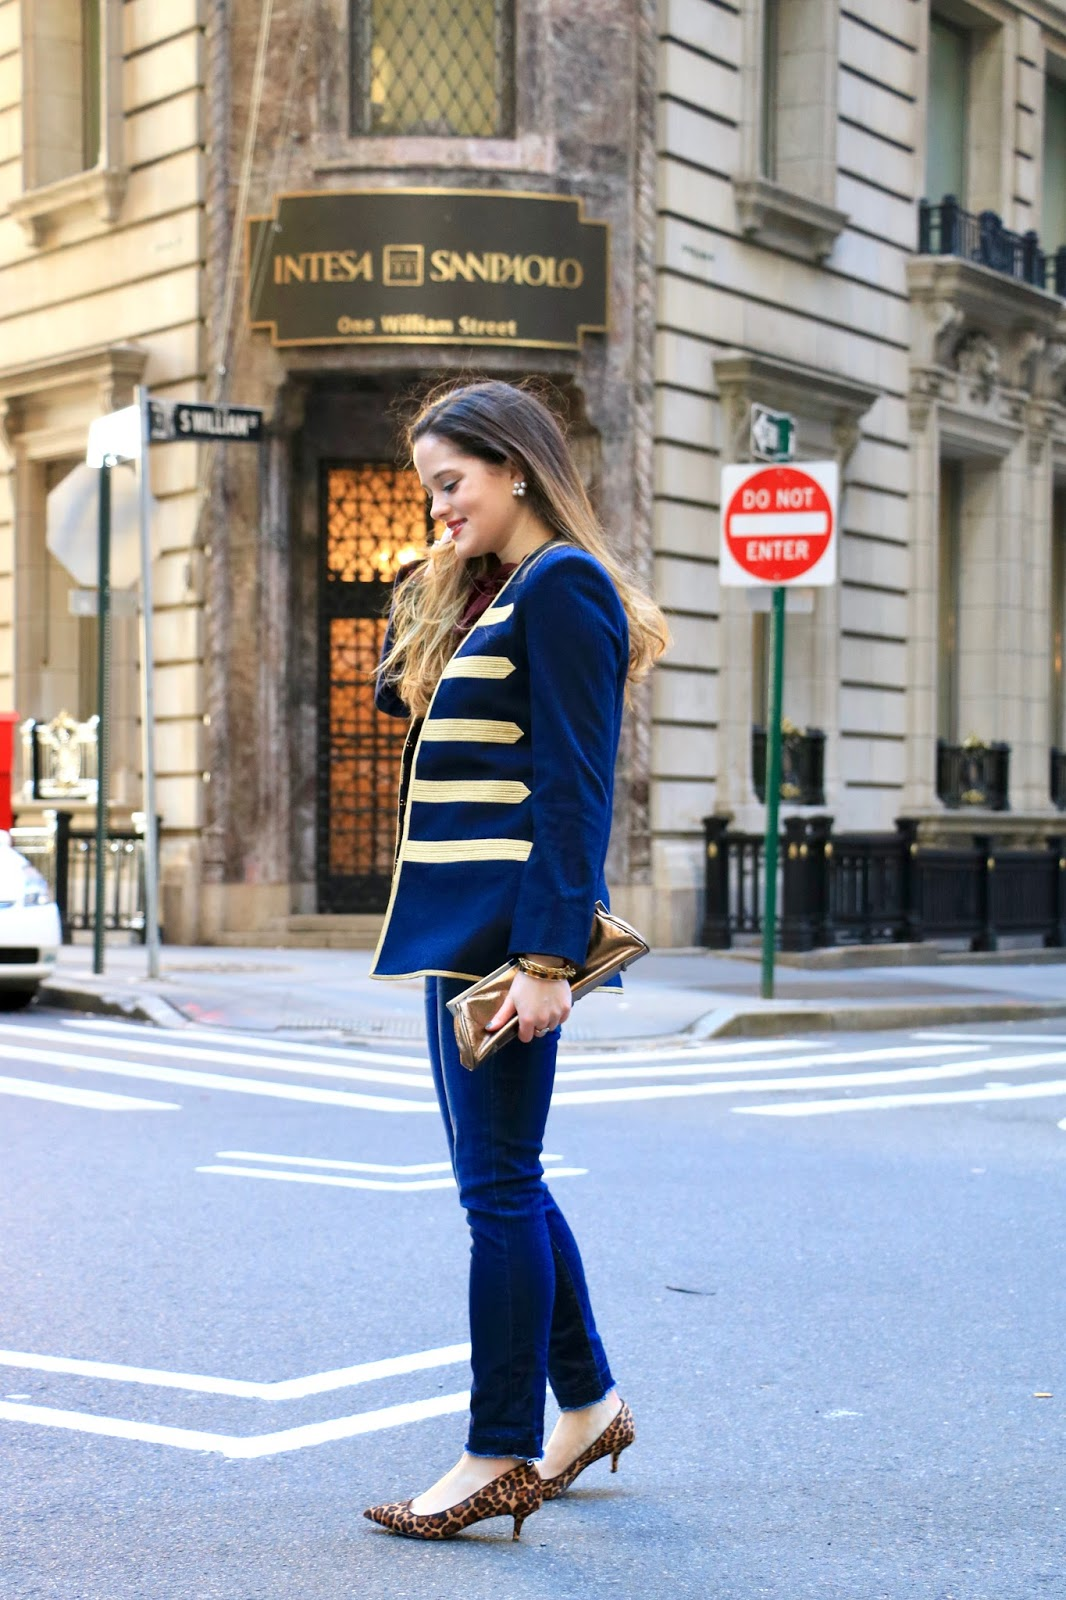 Nyc fashion blogger Kathleen Harper showing how to wear military trend